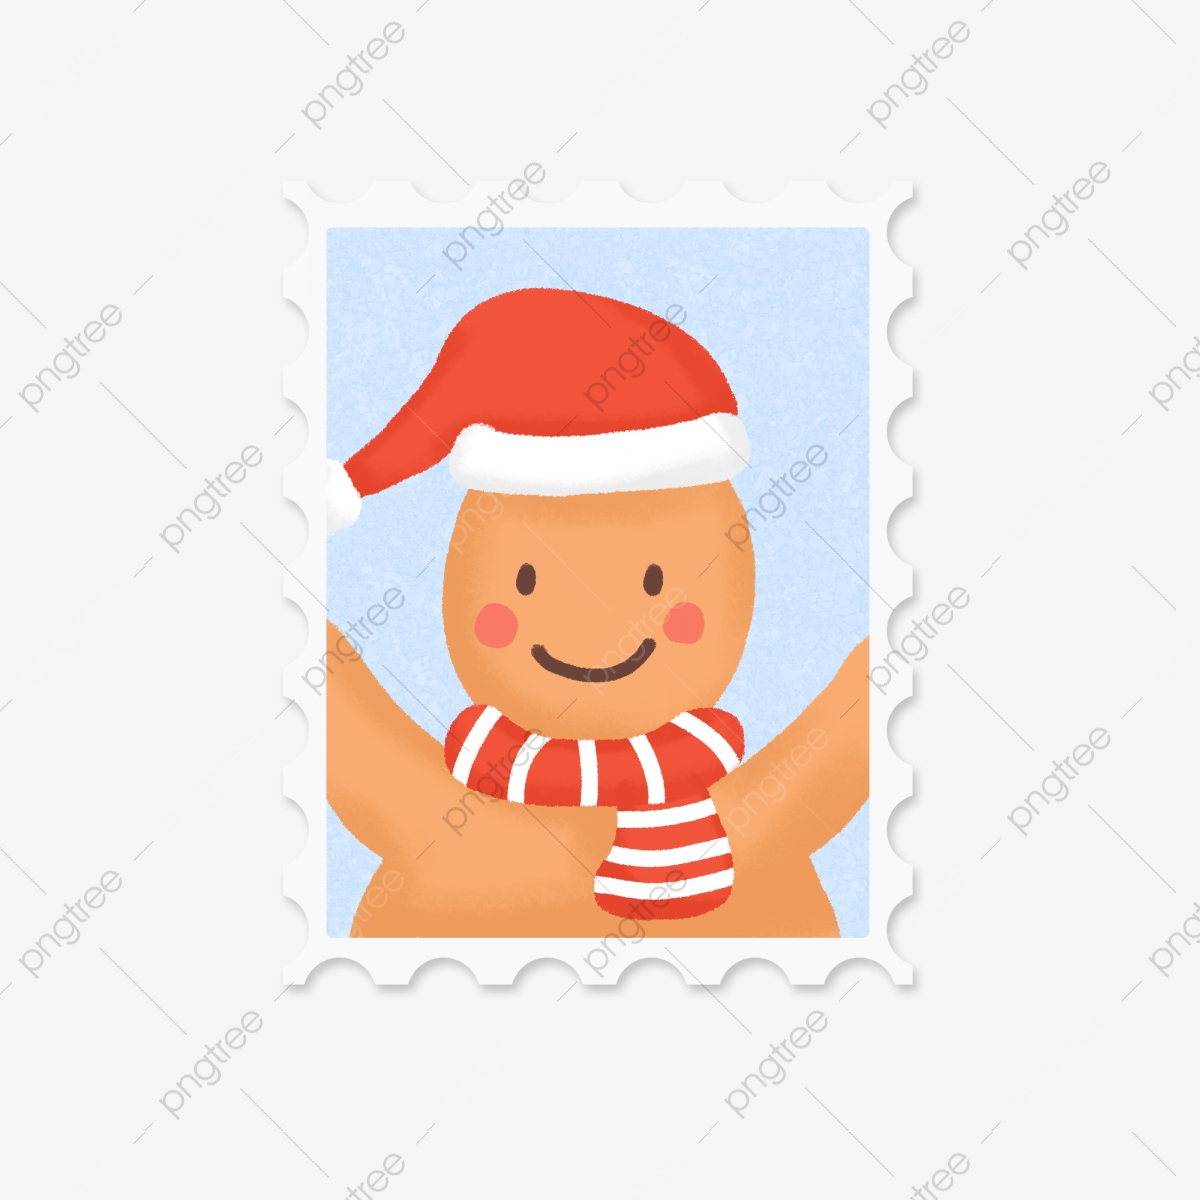 6 Christmas Cartoon Characters Vector Material, Cartoon Clipart.